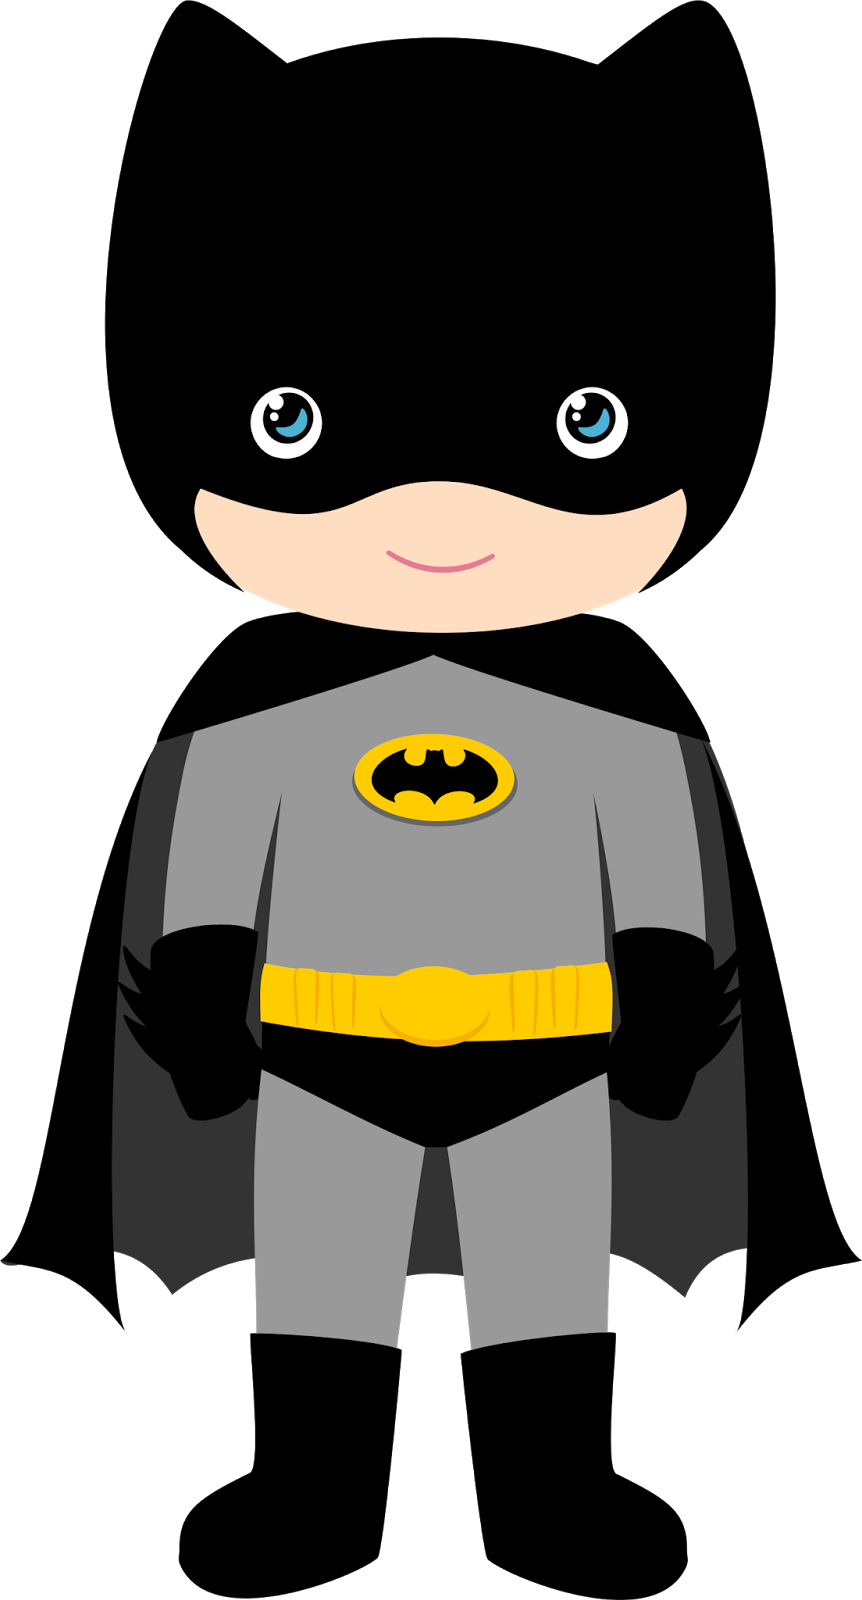 Characters of Batman Kids Version Clip Art. - Oh My Fiesta ...